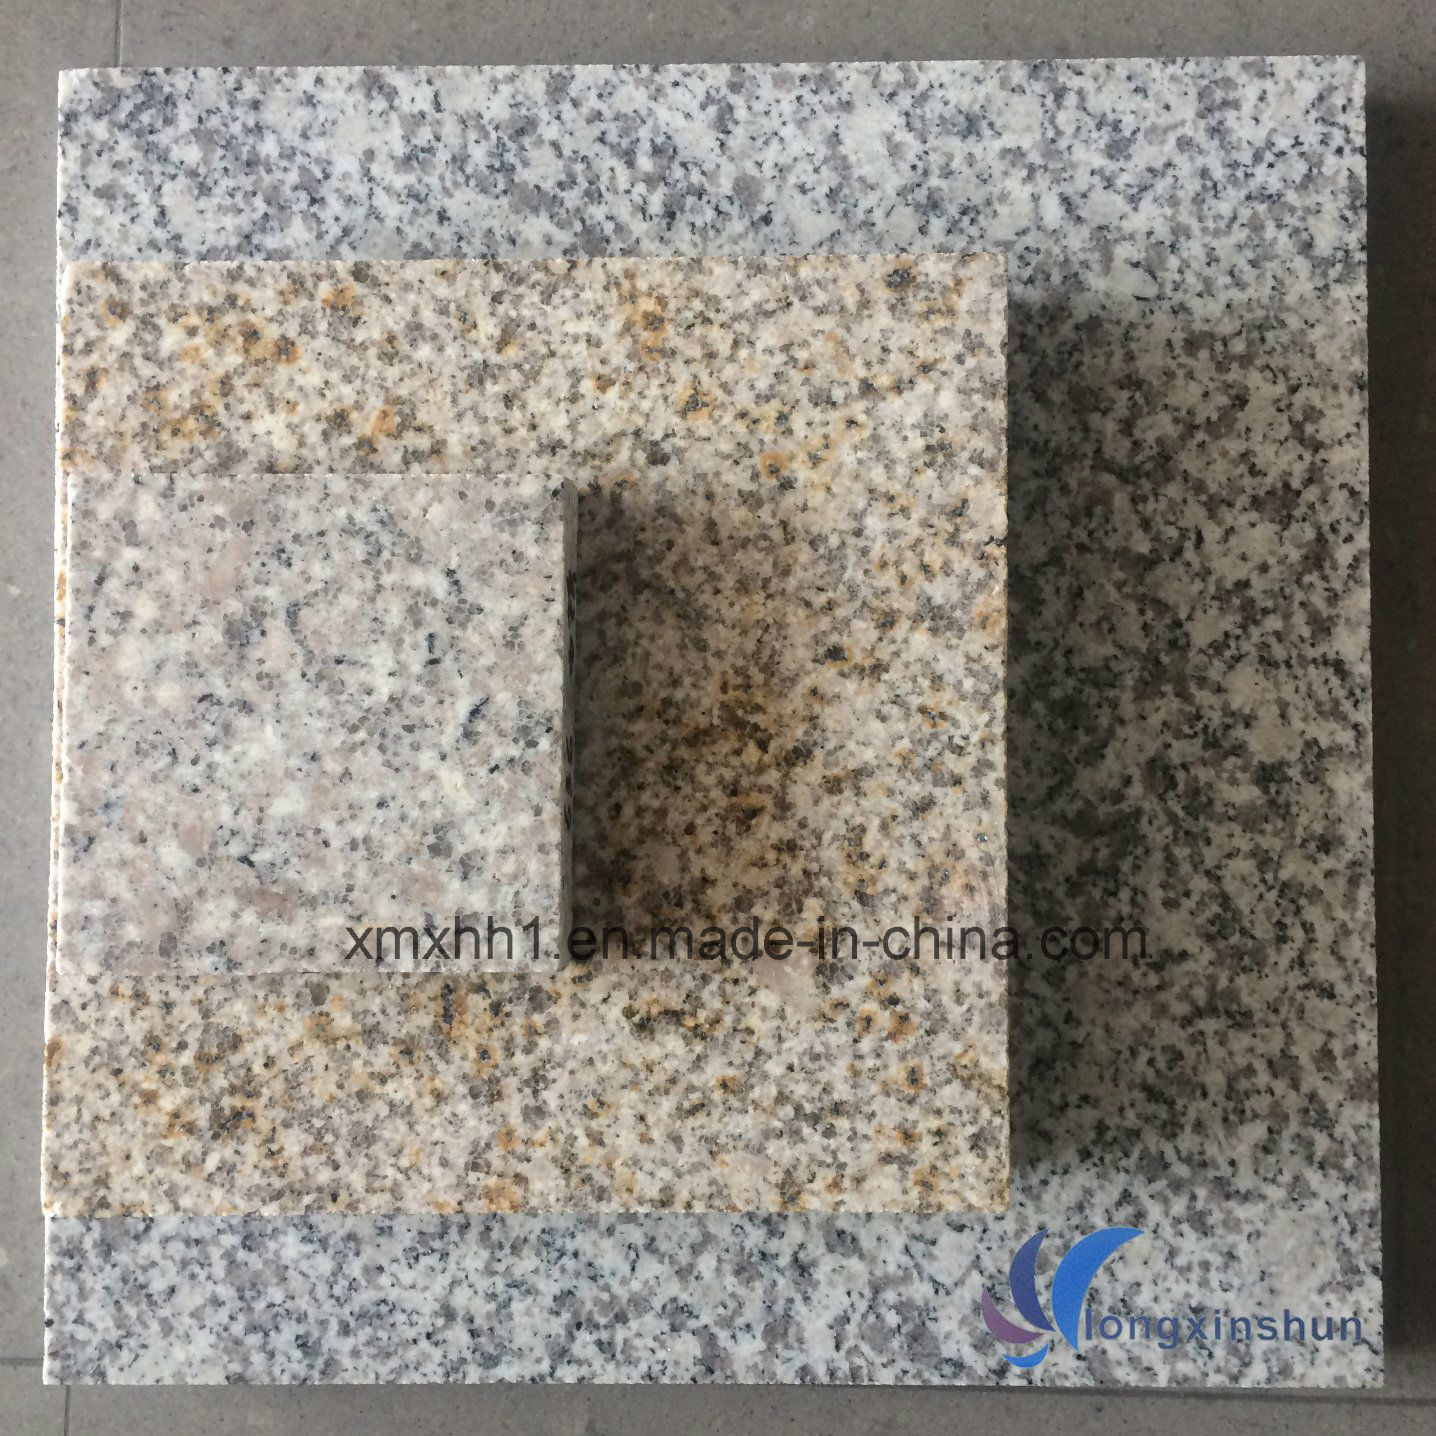 G603/G654/G664/Rusty Yellow White Grey Black Natural Granite/Marble Tile